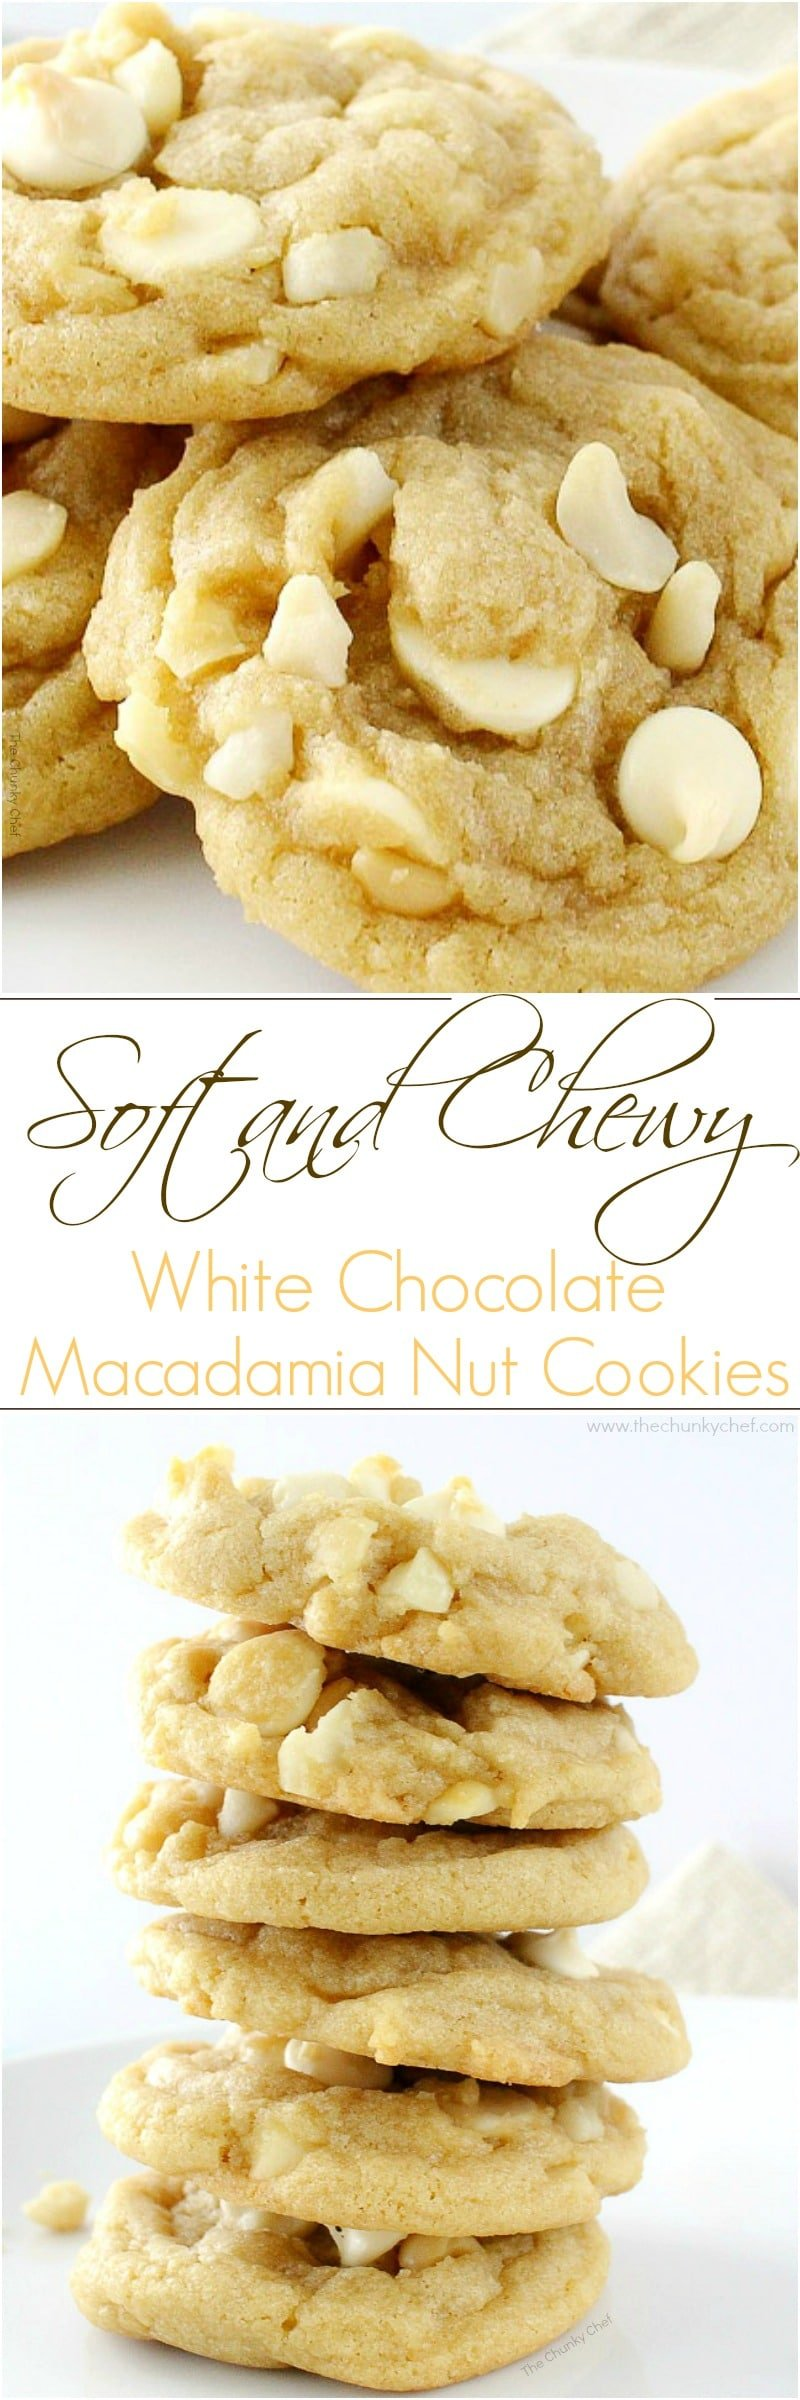 White Chocolate Macadamia Nut Cookies Recipe Subway